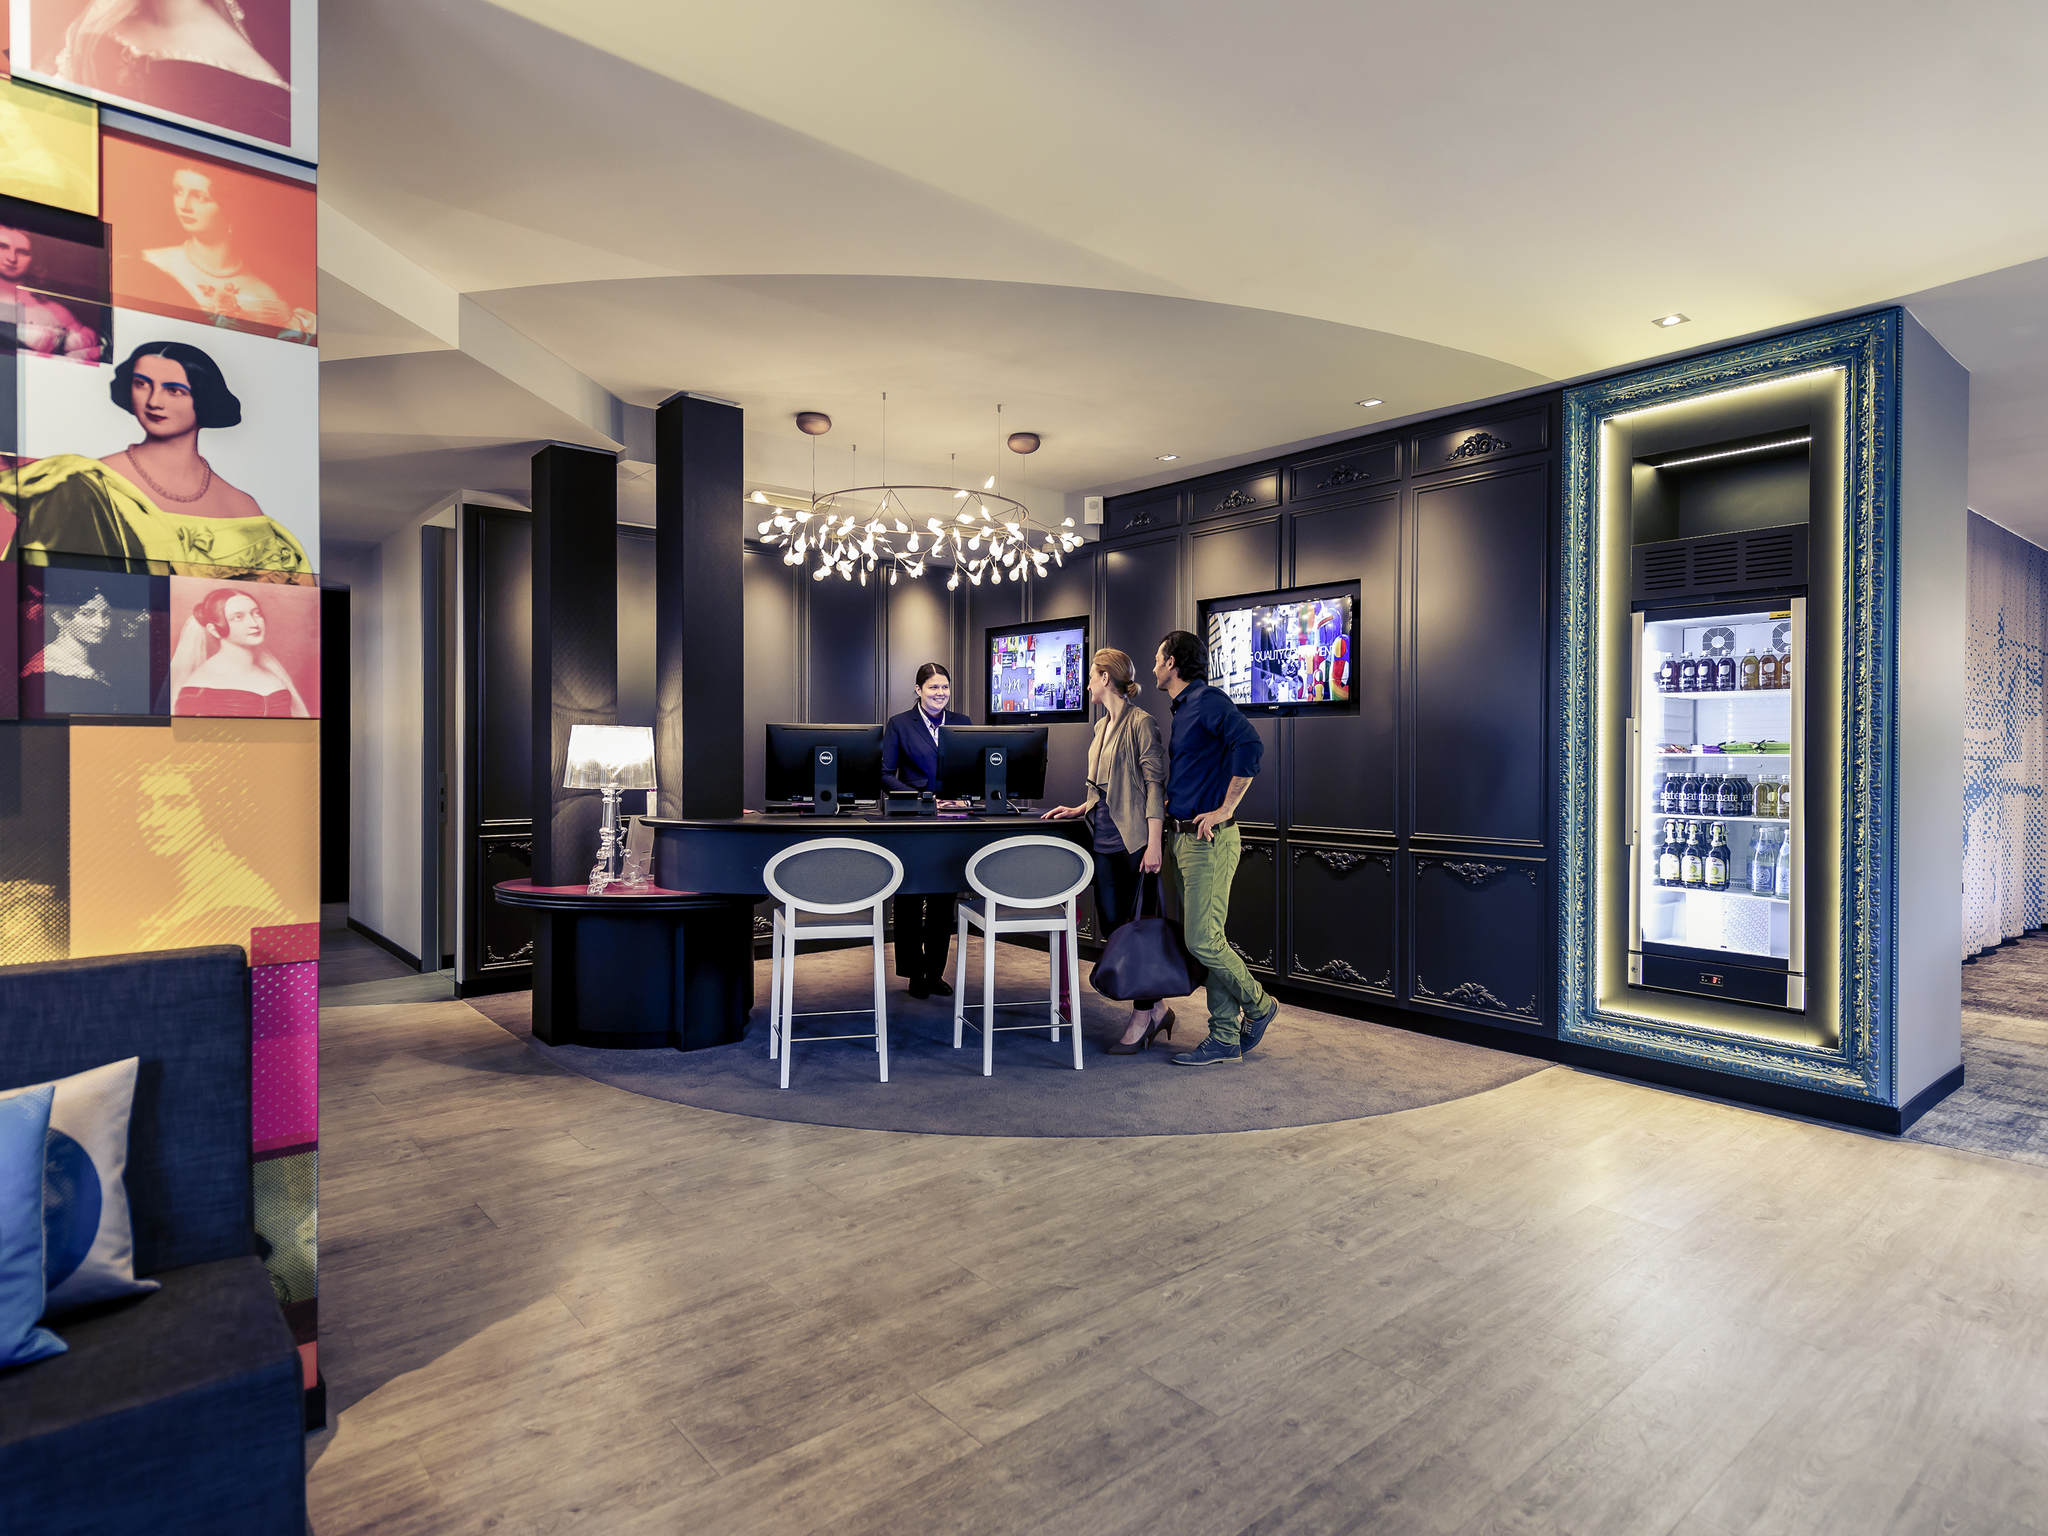 Hotel – Mercure Munich am Olympiapark